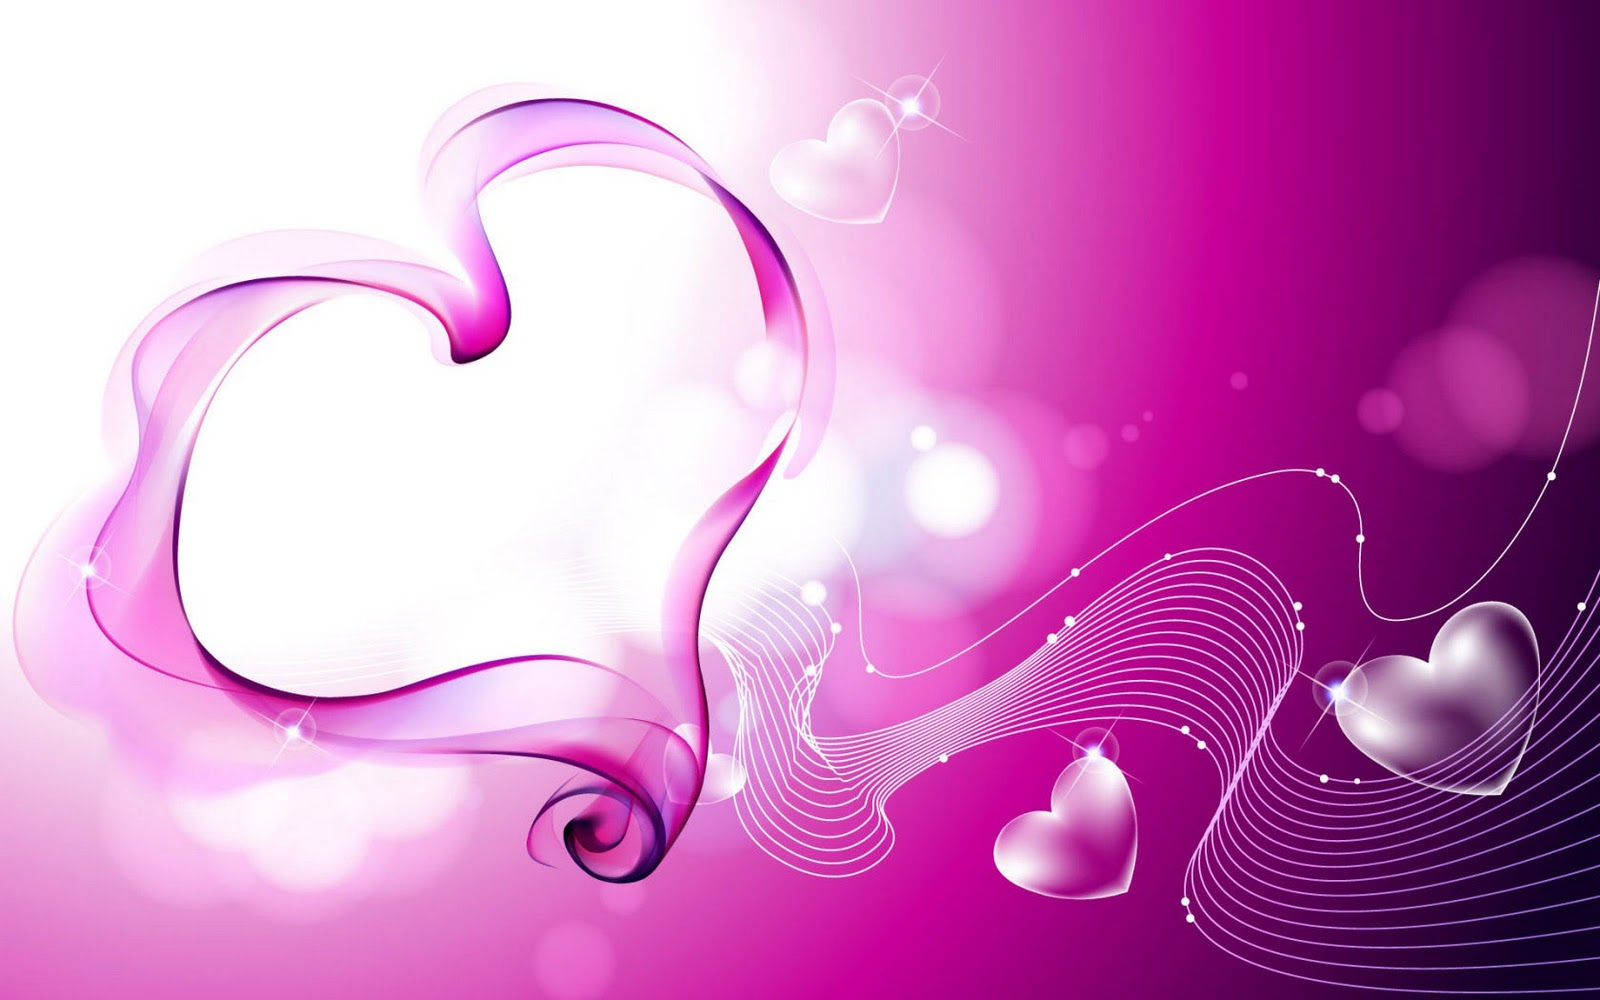 Love You Baby Hd Wallpaper : Liefdes Wallpapers HD Wallpapers